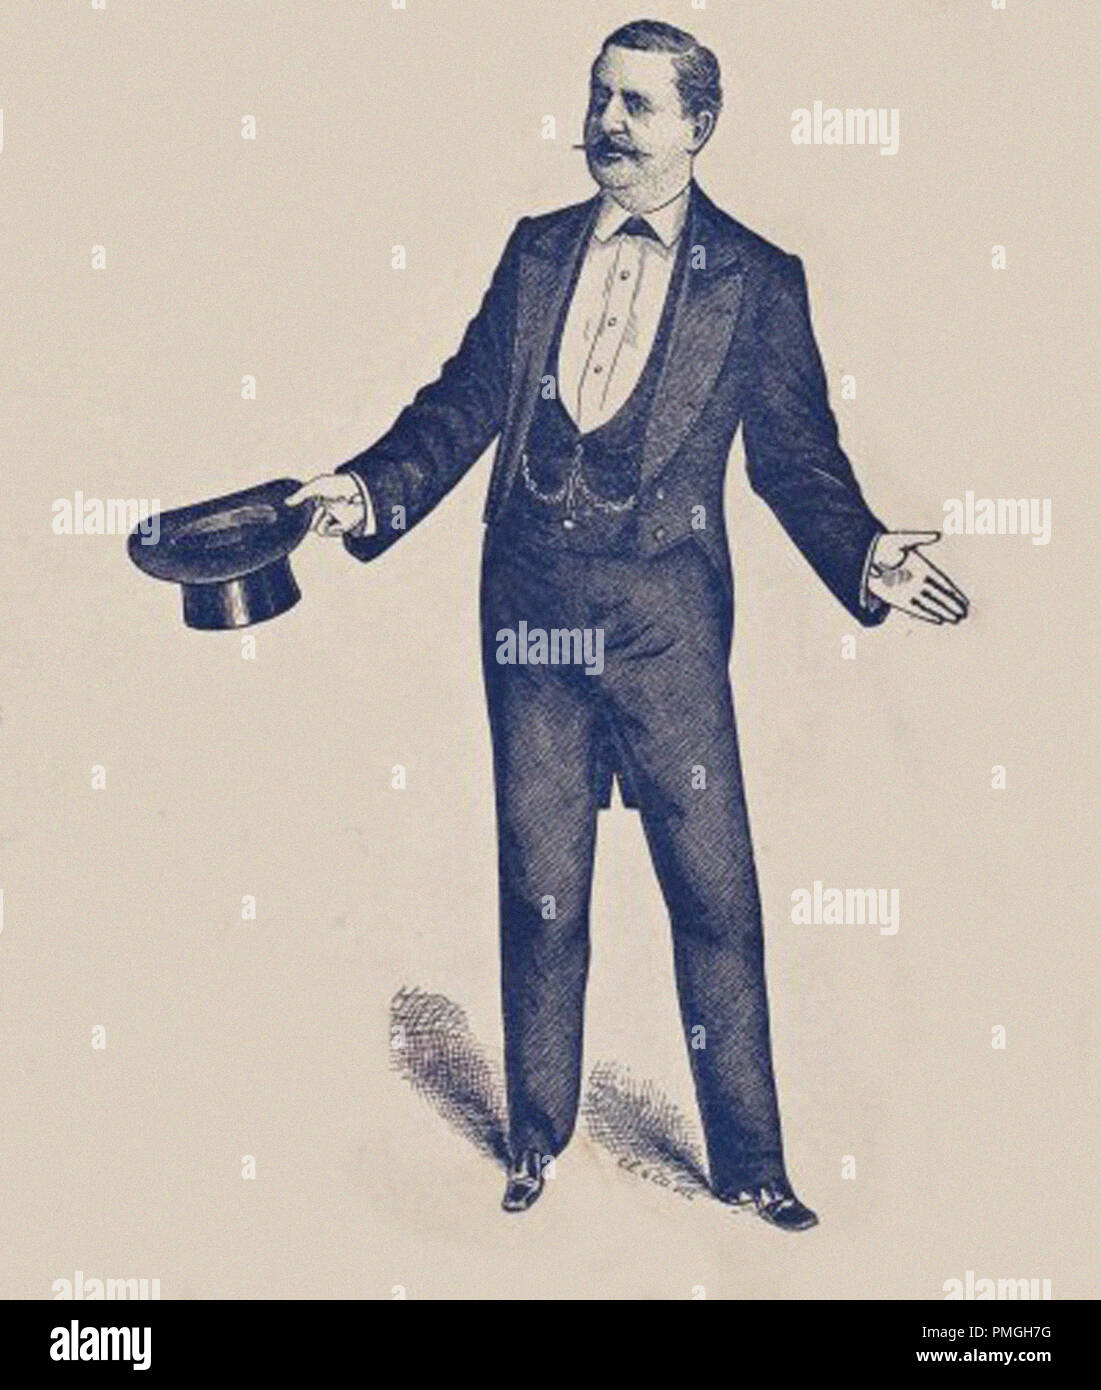 vintage illustration of a gentleman with a top hat gesturing - Stock Image